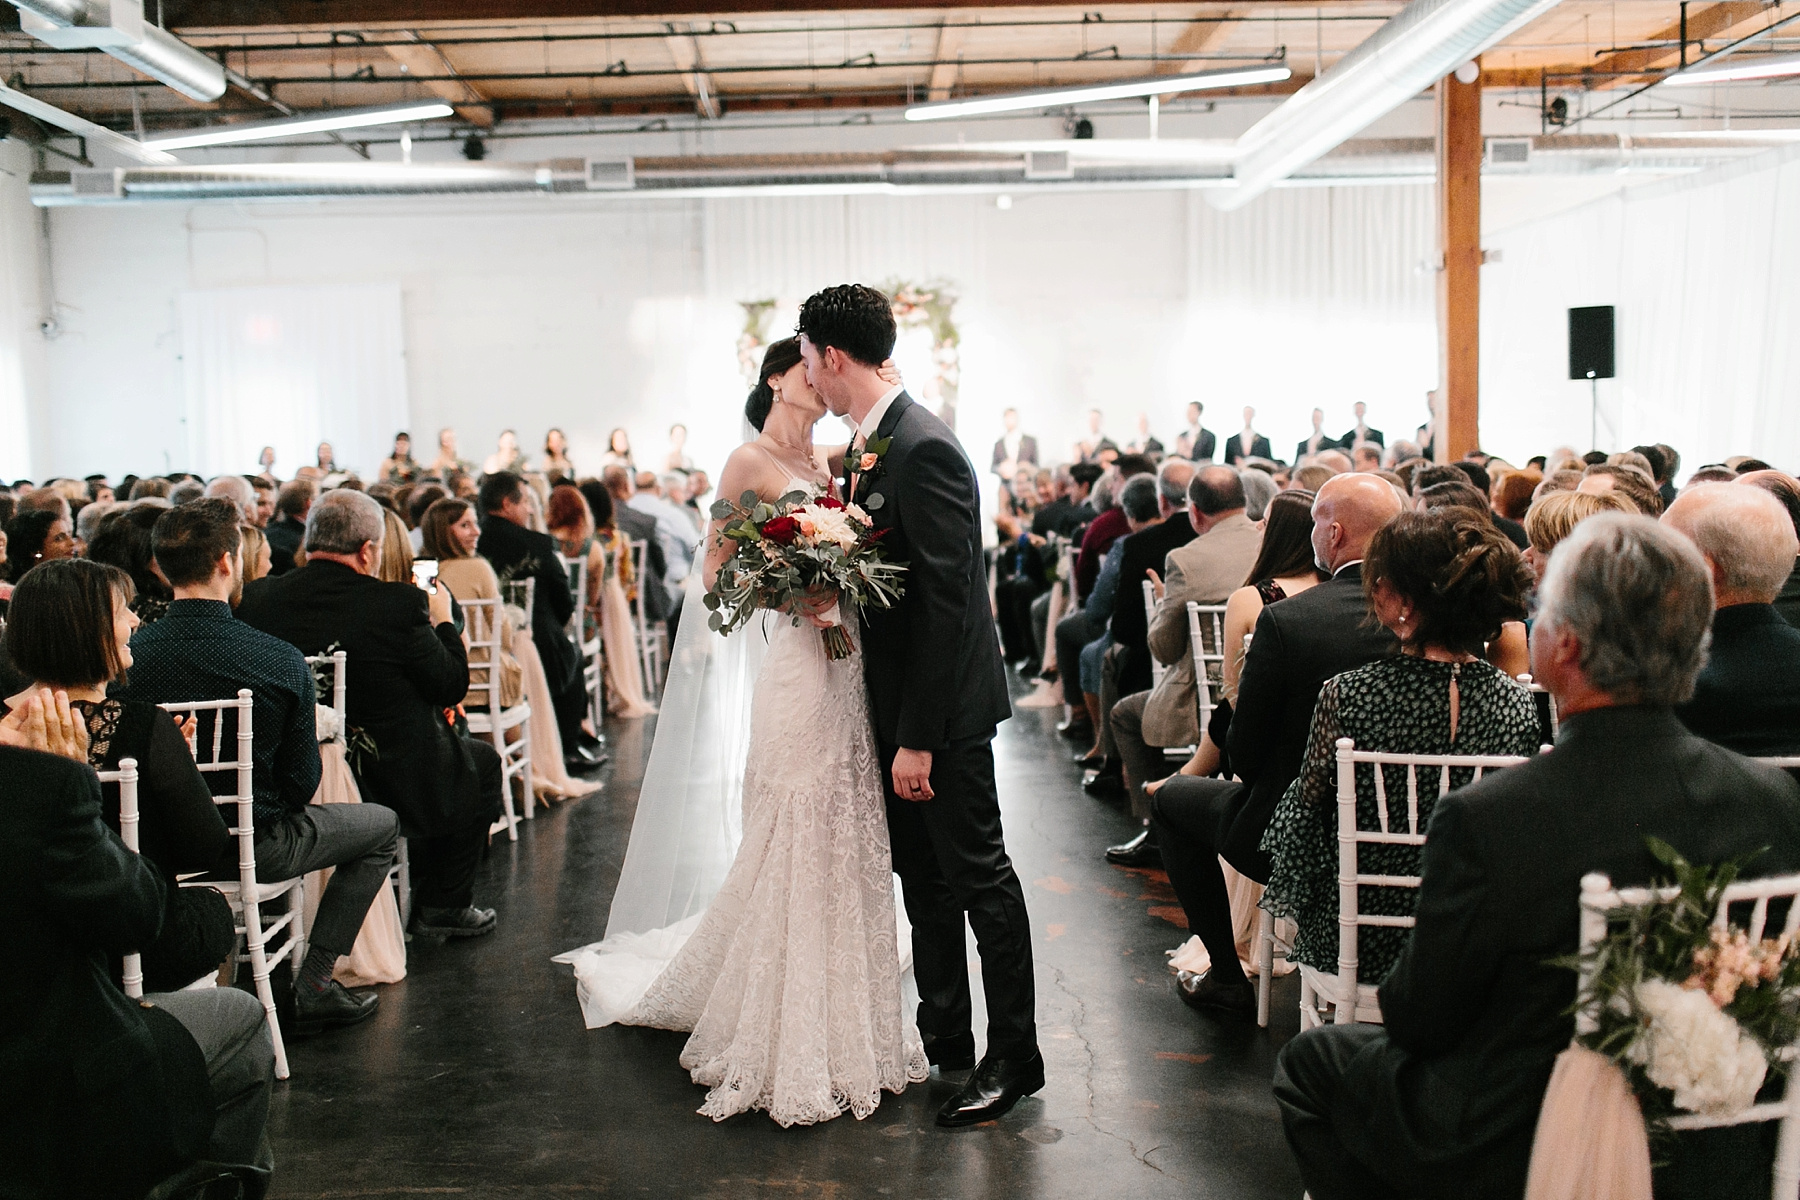 Emily + Caleb _ an elegant, intentional, industrial style wedding with navy + gold accents at 6500 in Dallas, TX by North Texas Wedding Photographer Rachel Meagan Photography _ 101